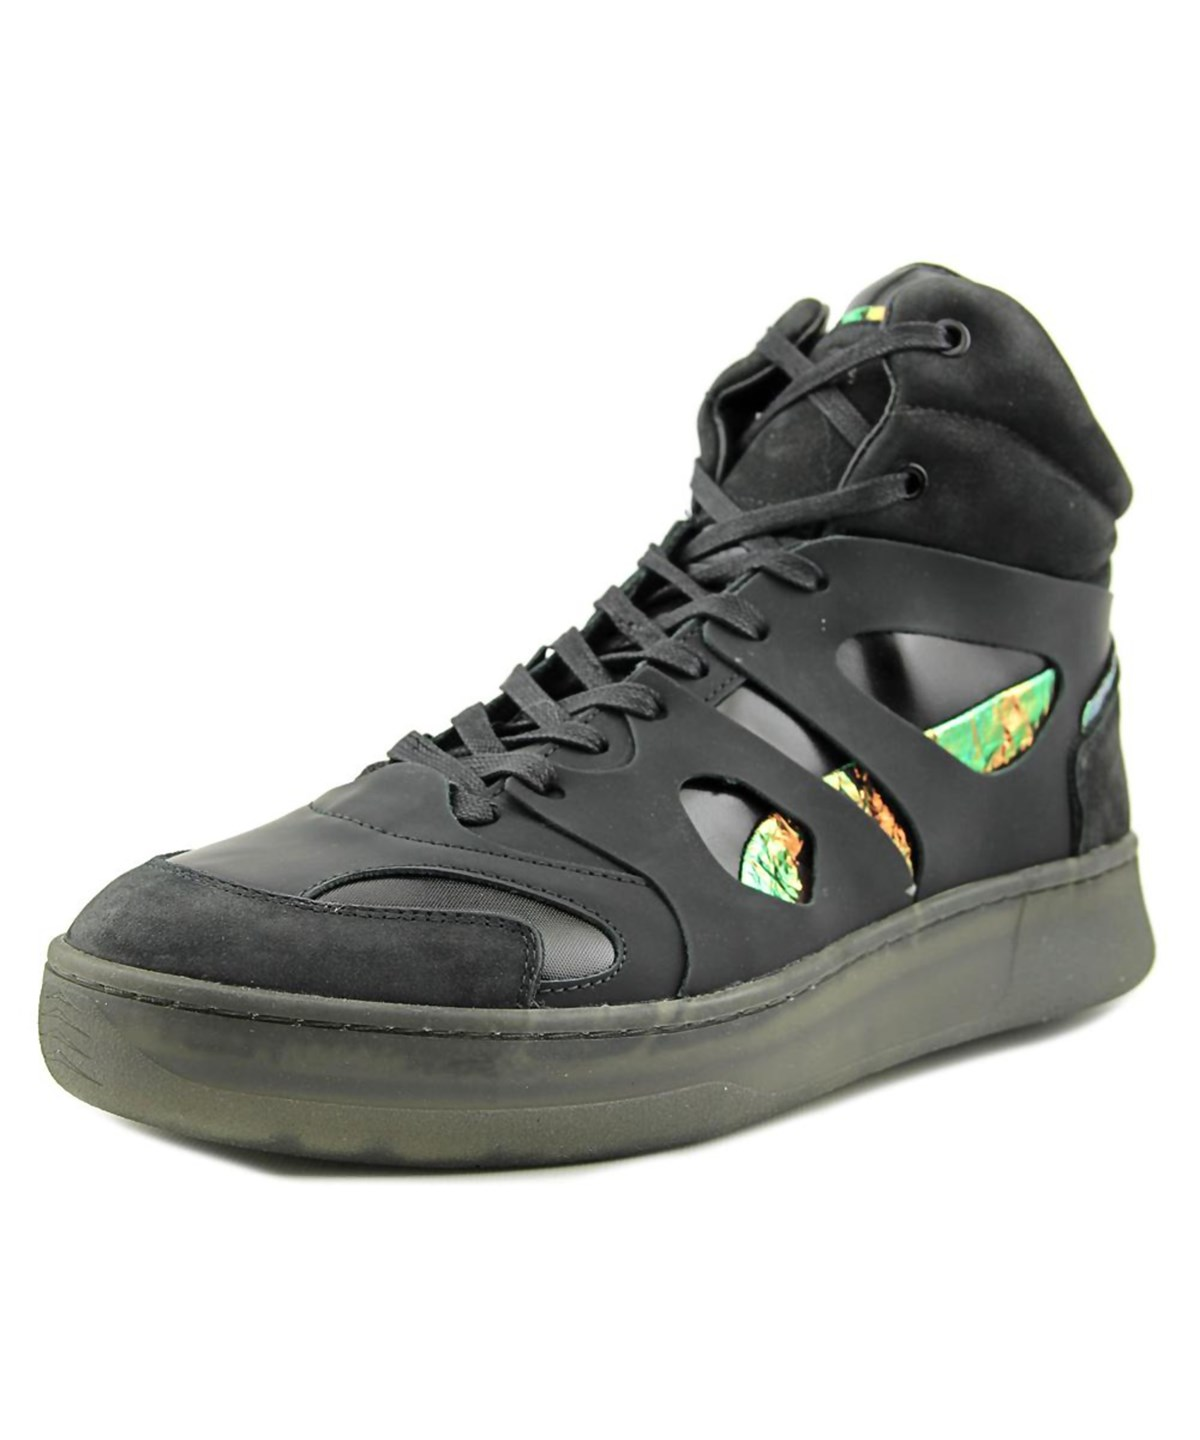 c0d62599121 Puma Alexander Mcqueen By Mcq Move Mid Men Leather Black Basketball Shoe